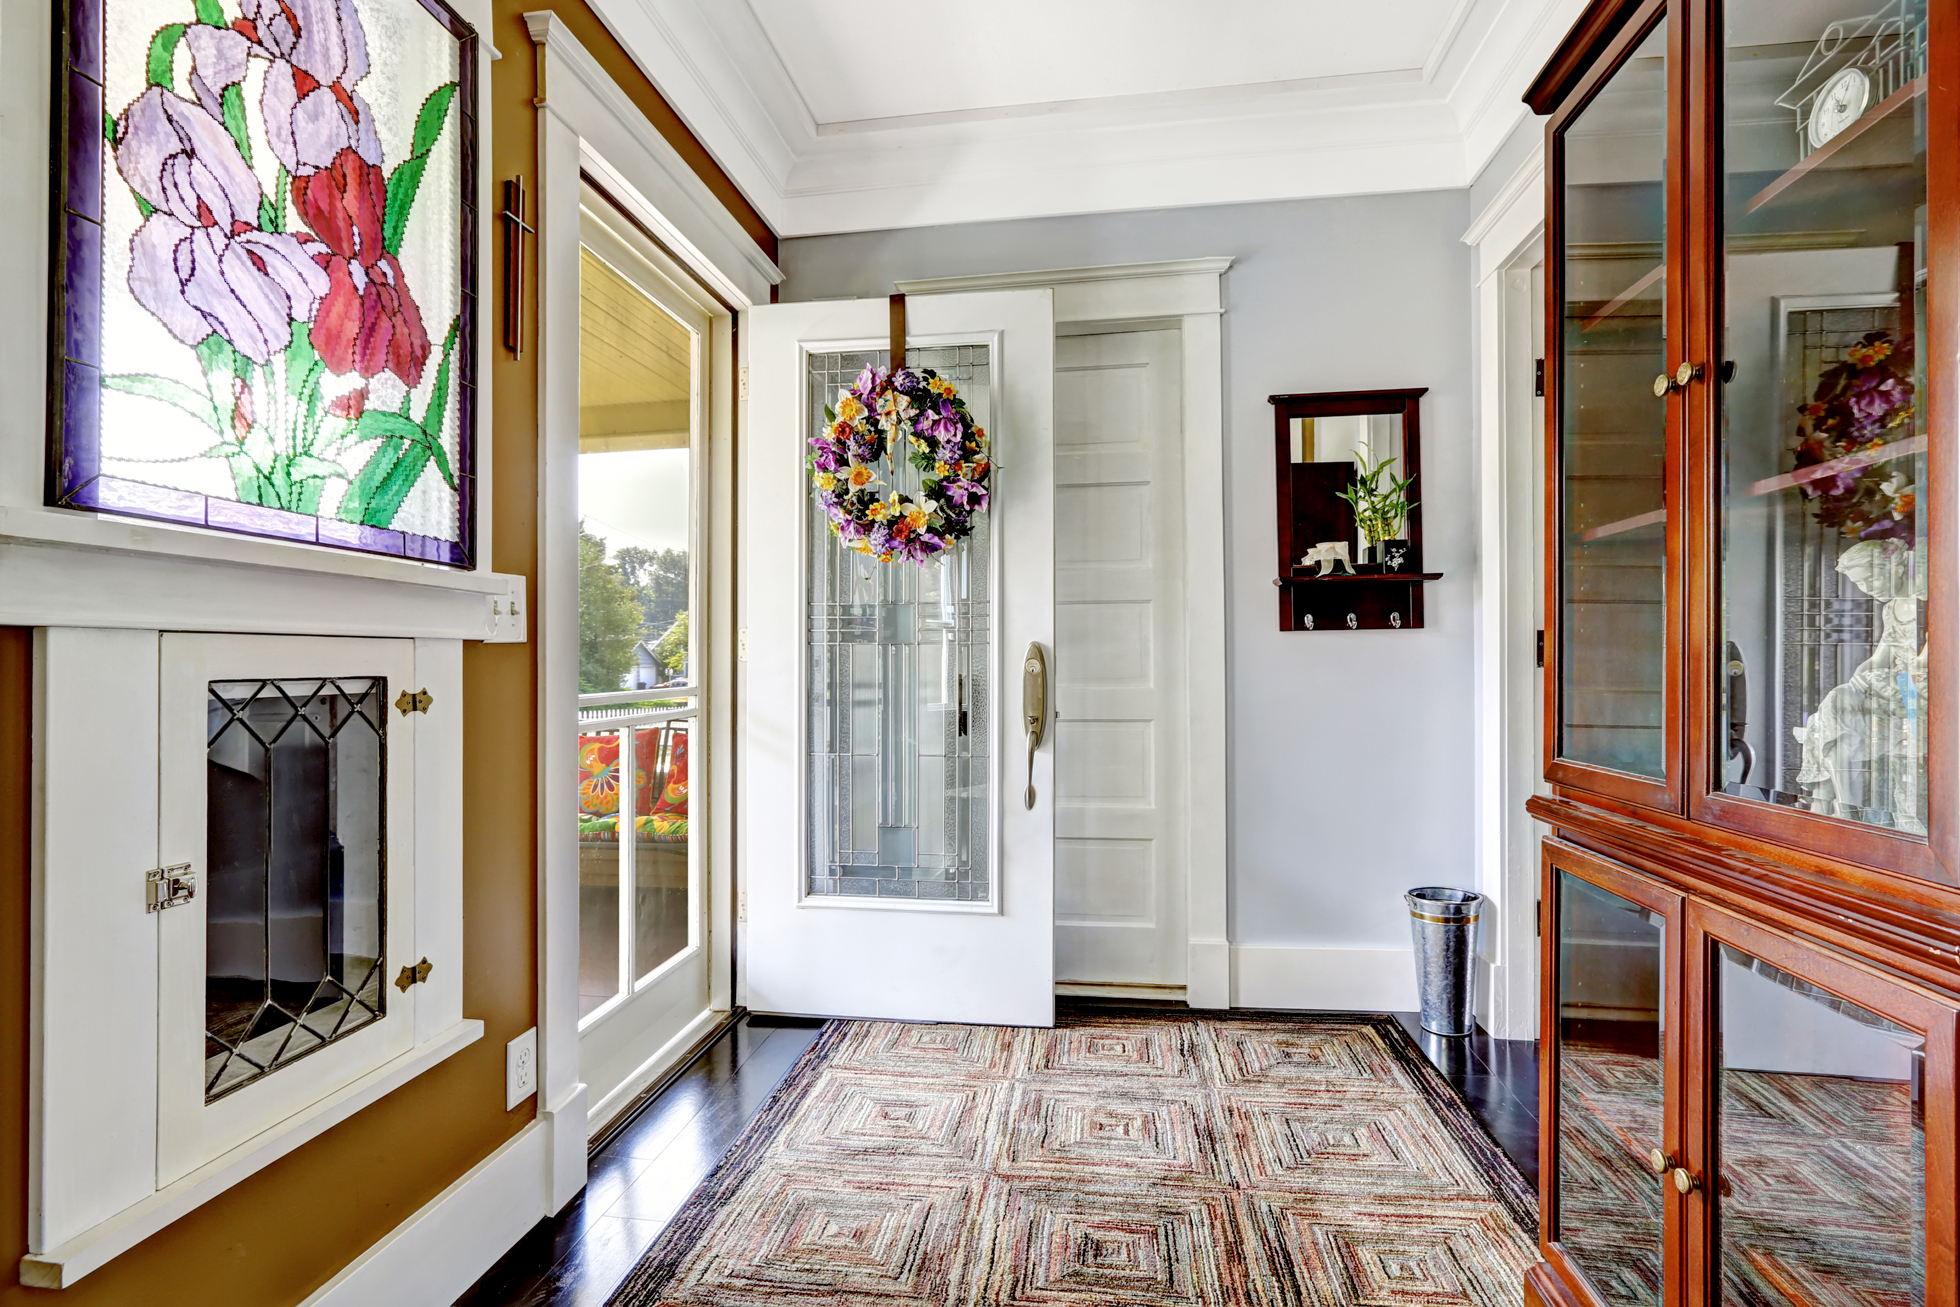 An open white door with glass insert in entryway